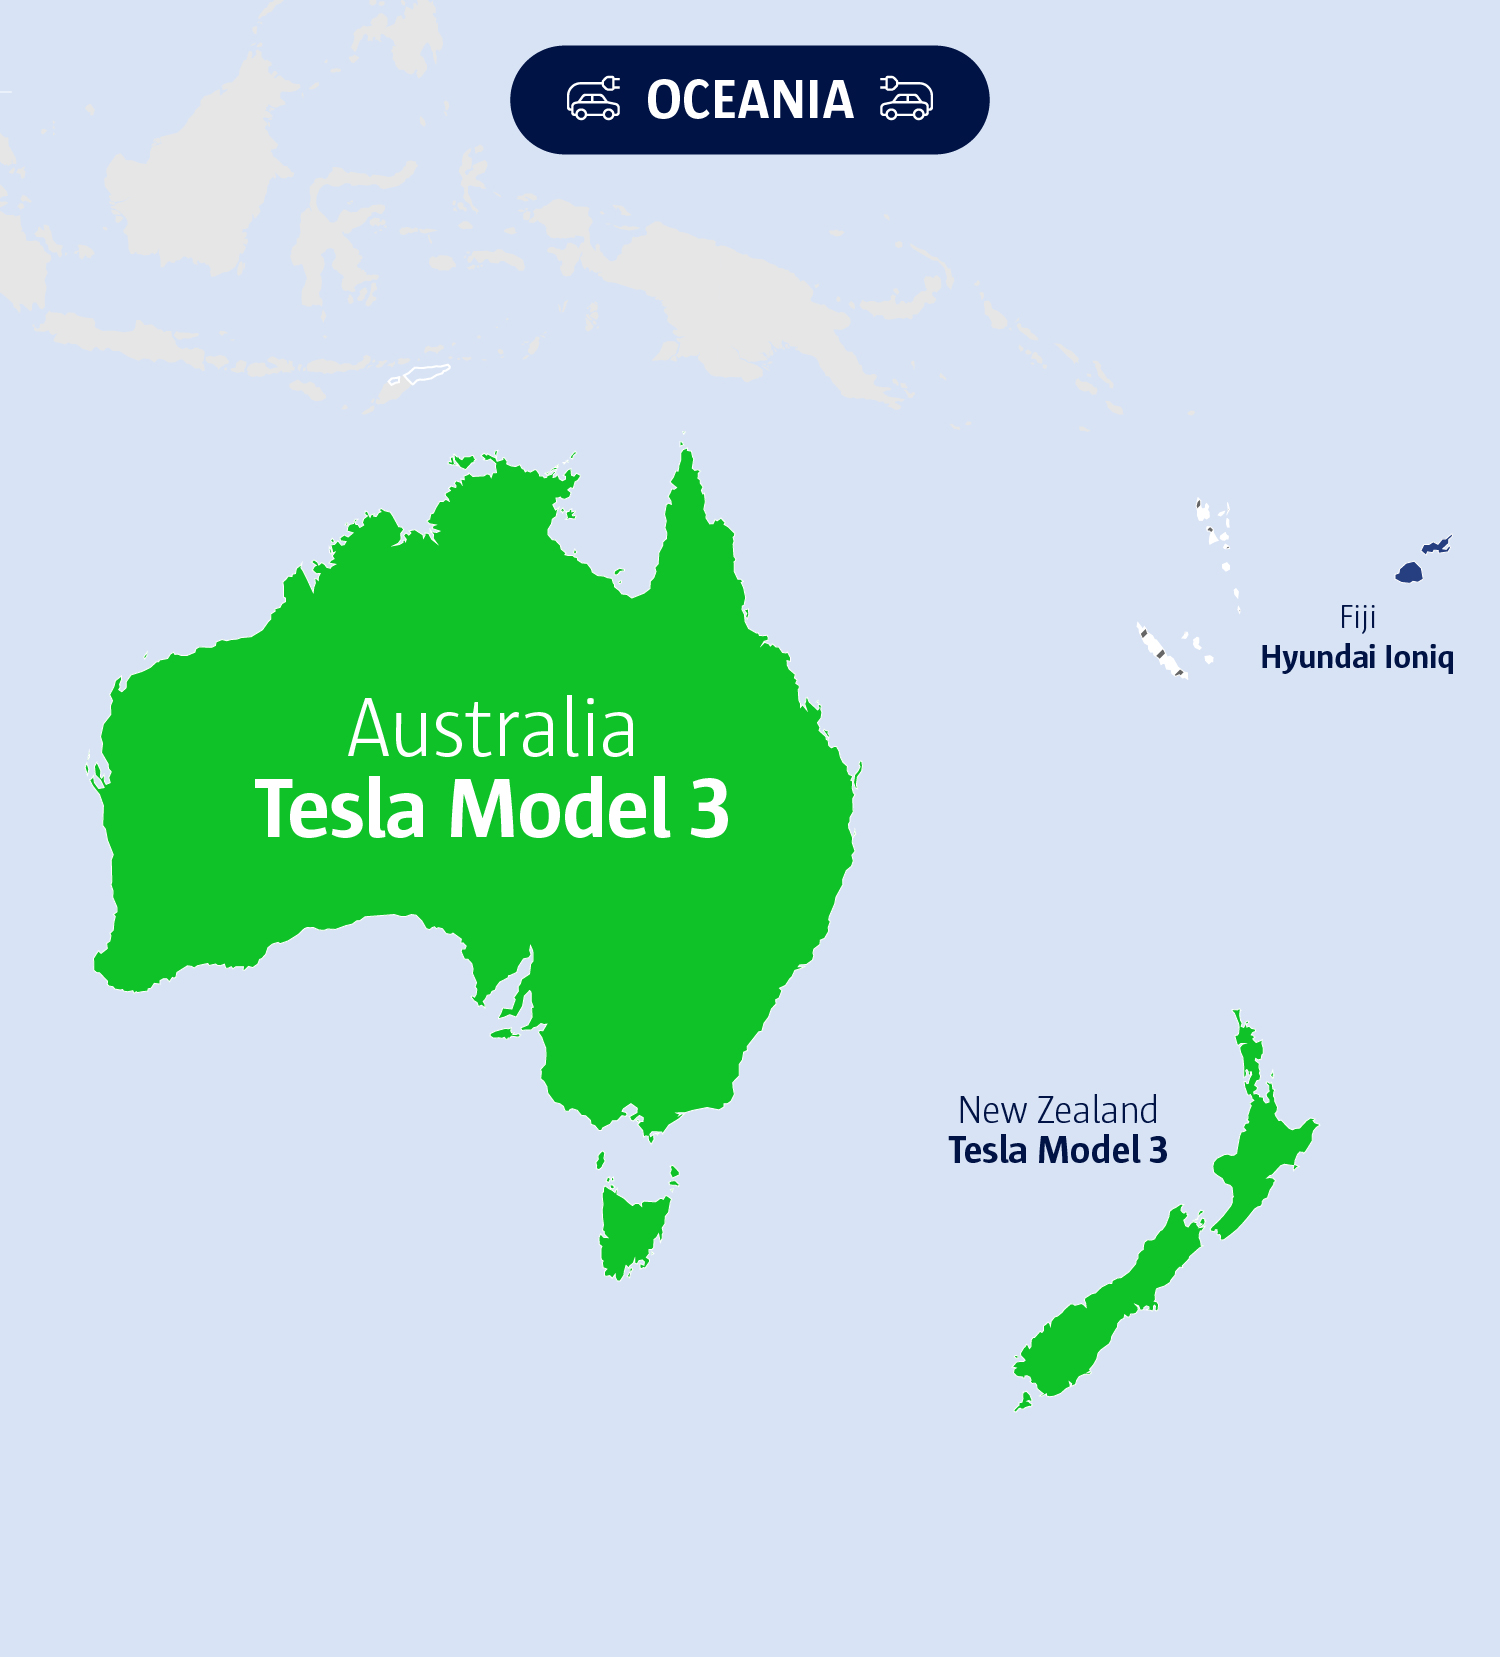 An image of Oceania's electric vehicles.